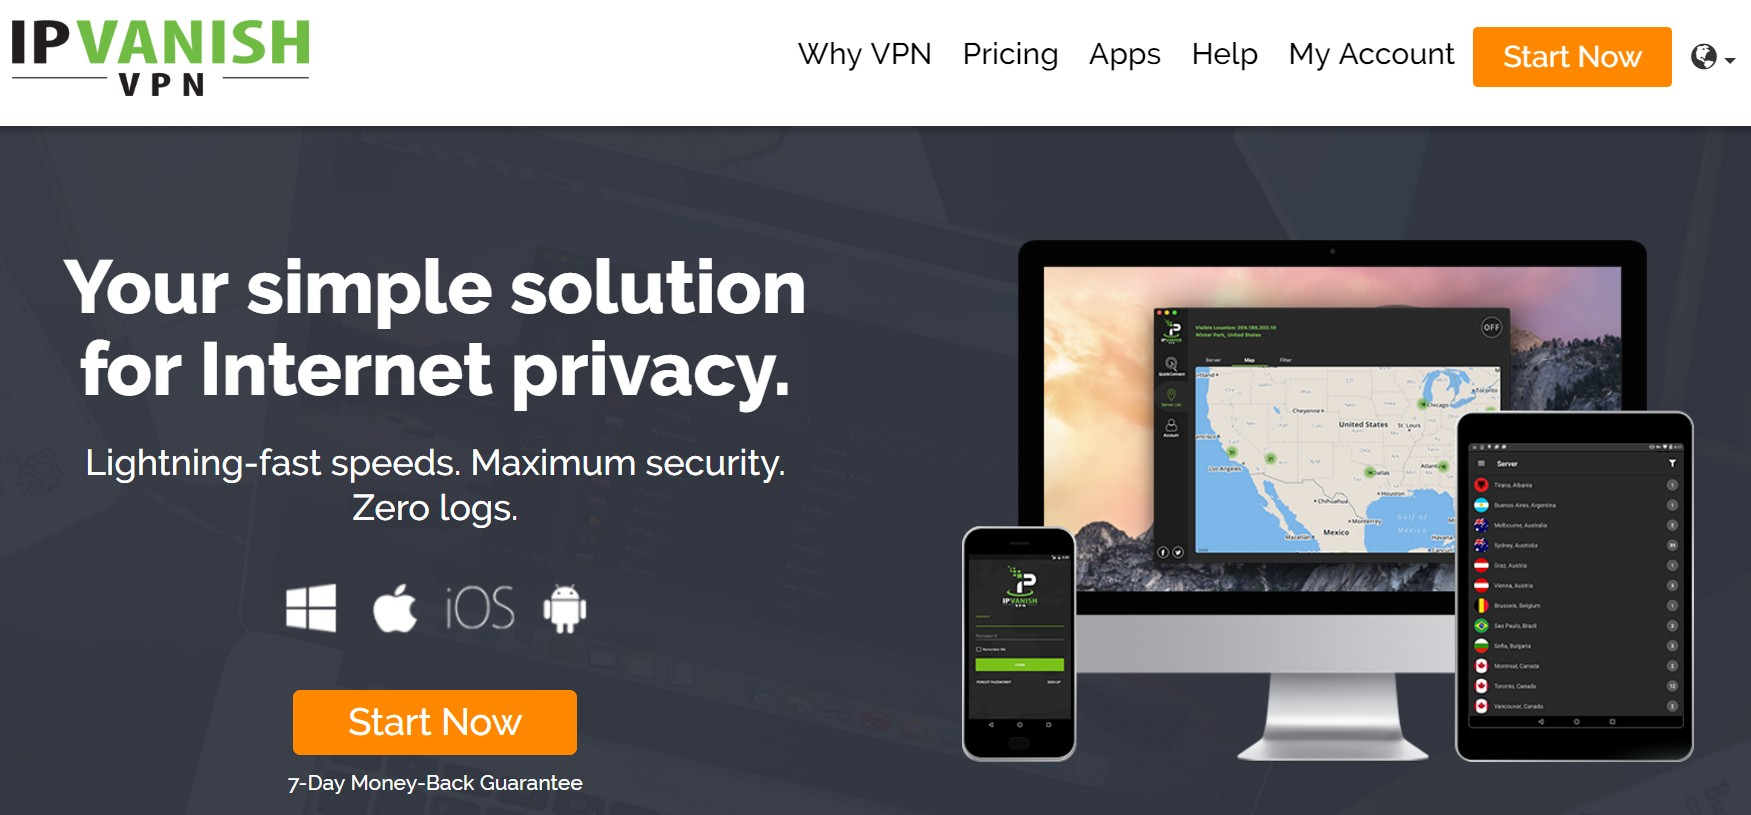 IPVanish VPN Home Page - Best Gaming VPN